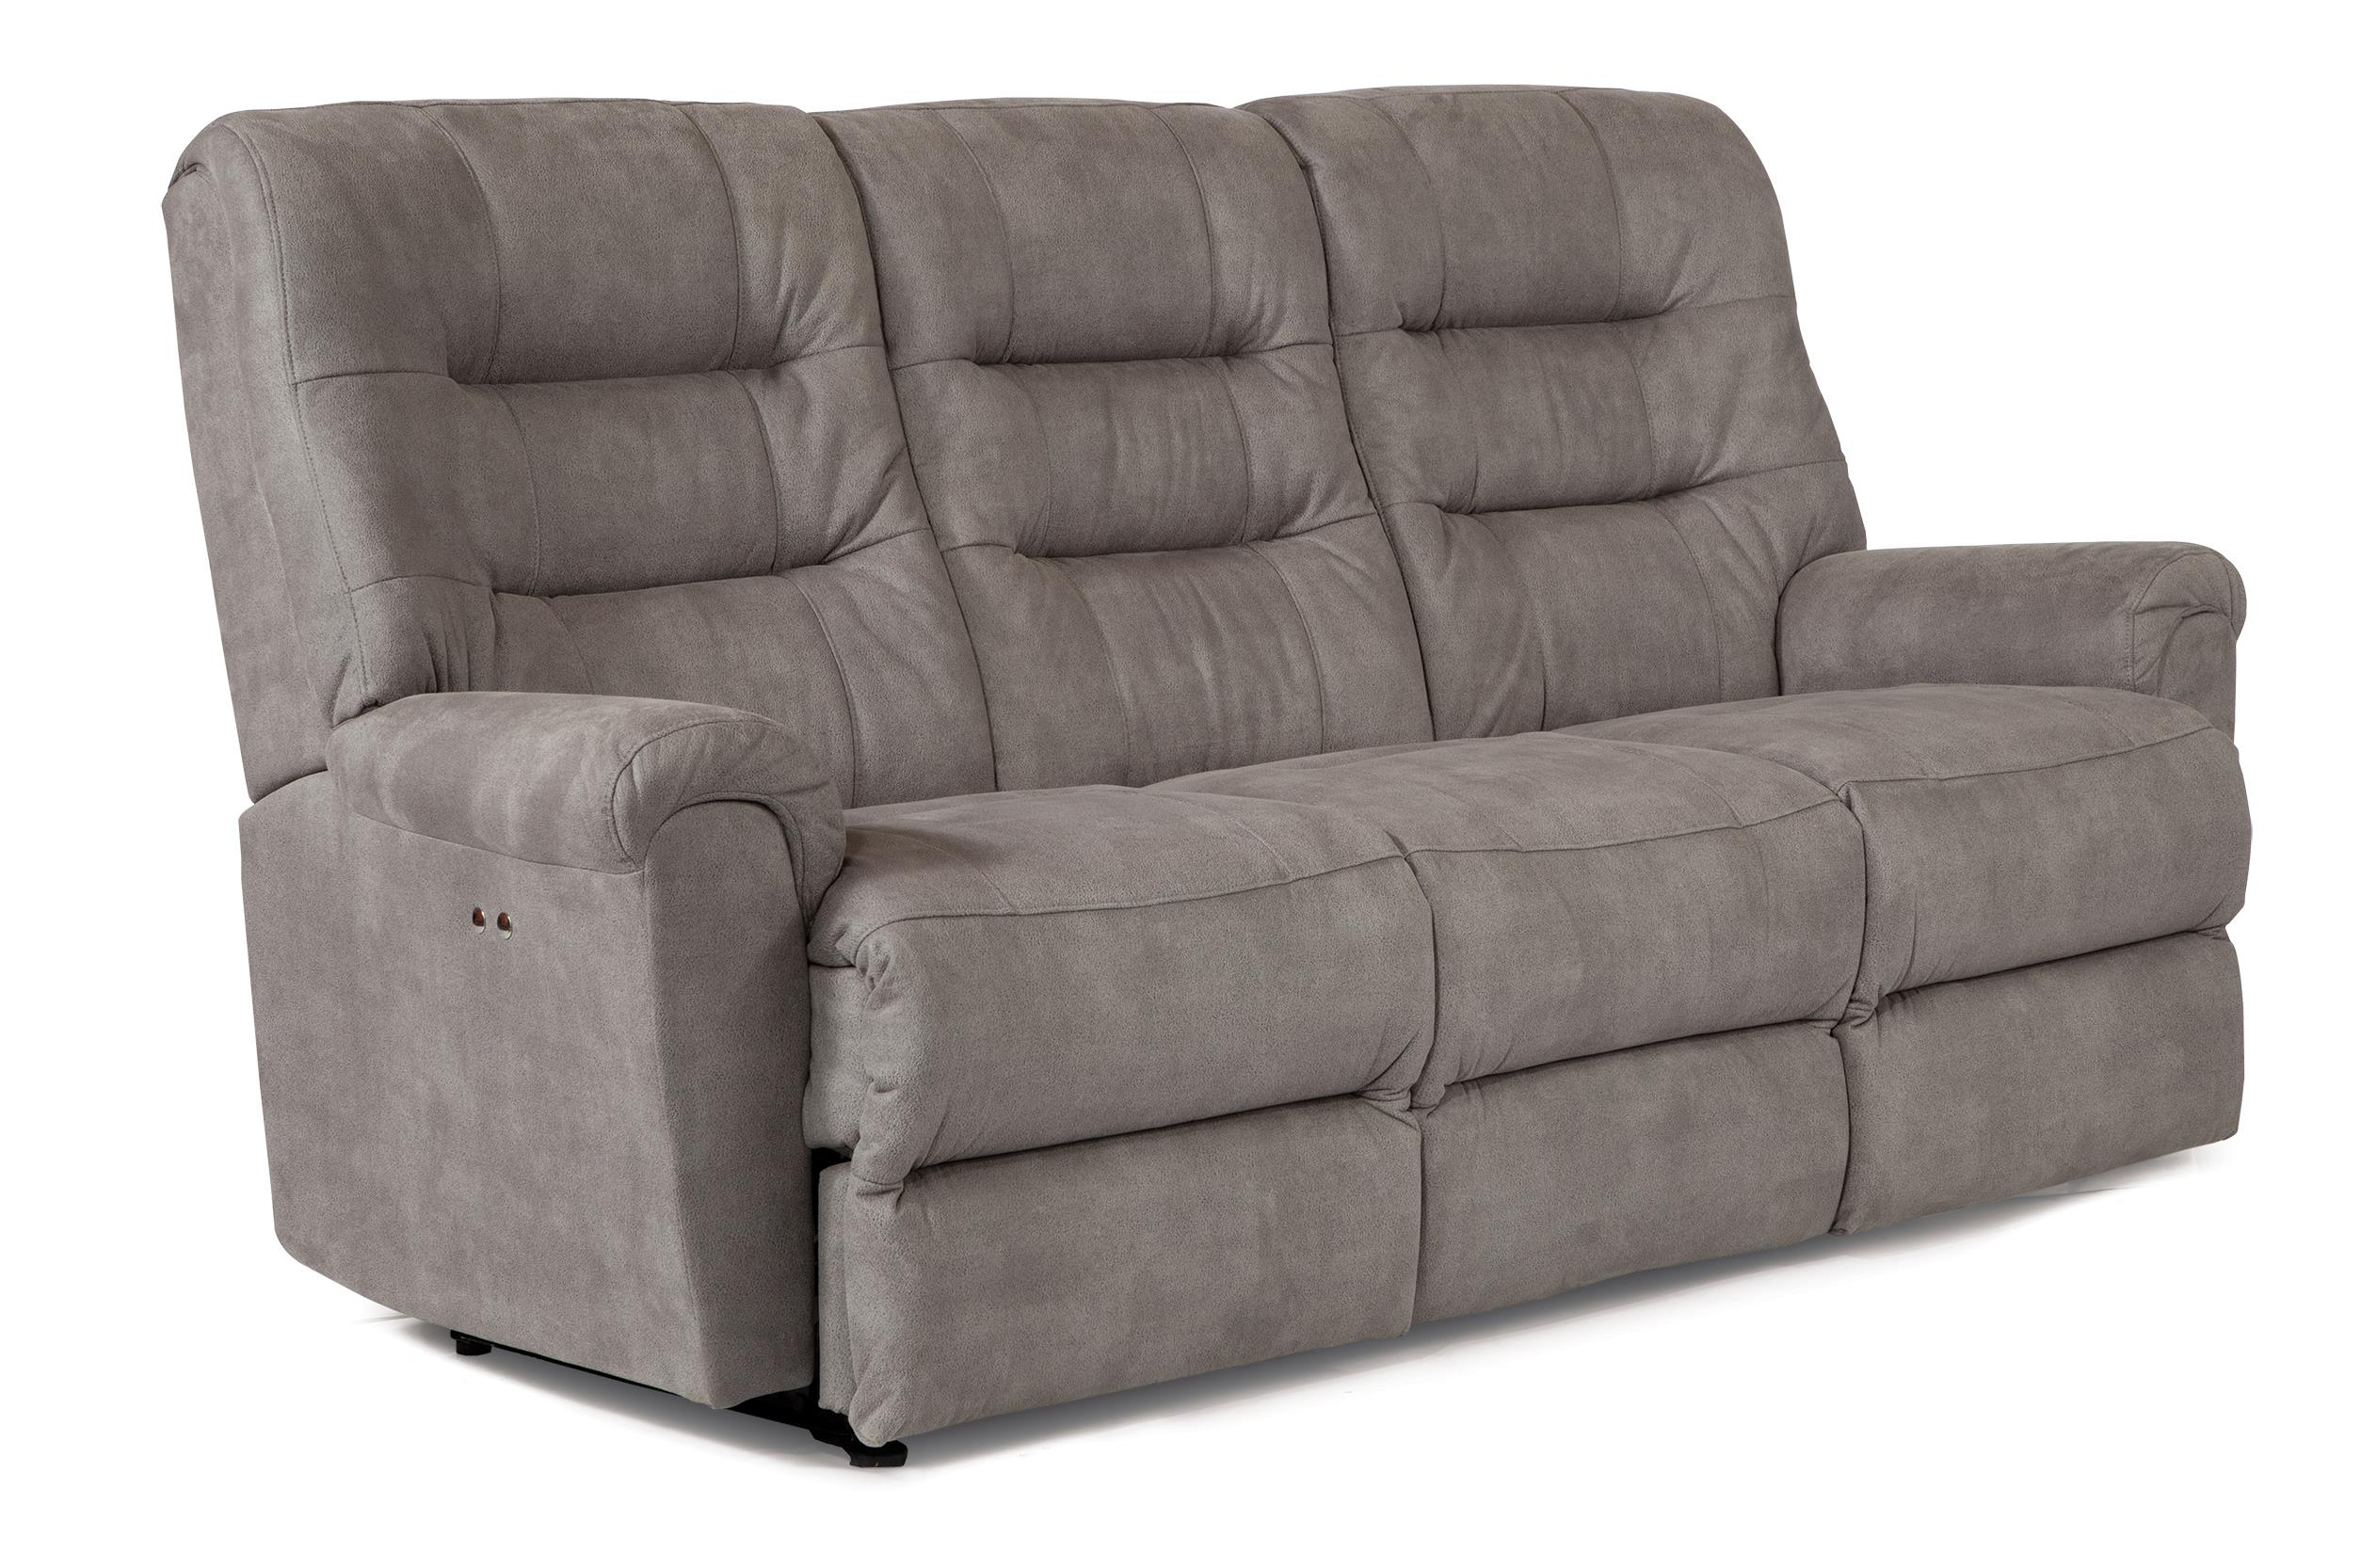 Best Home Furnishings Langston Motion Sofa - Item Number: S820RA4-25273